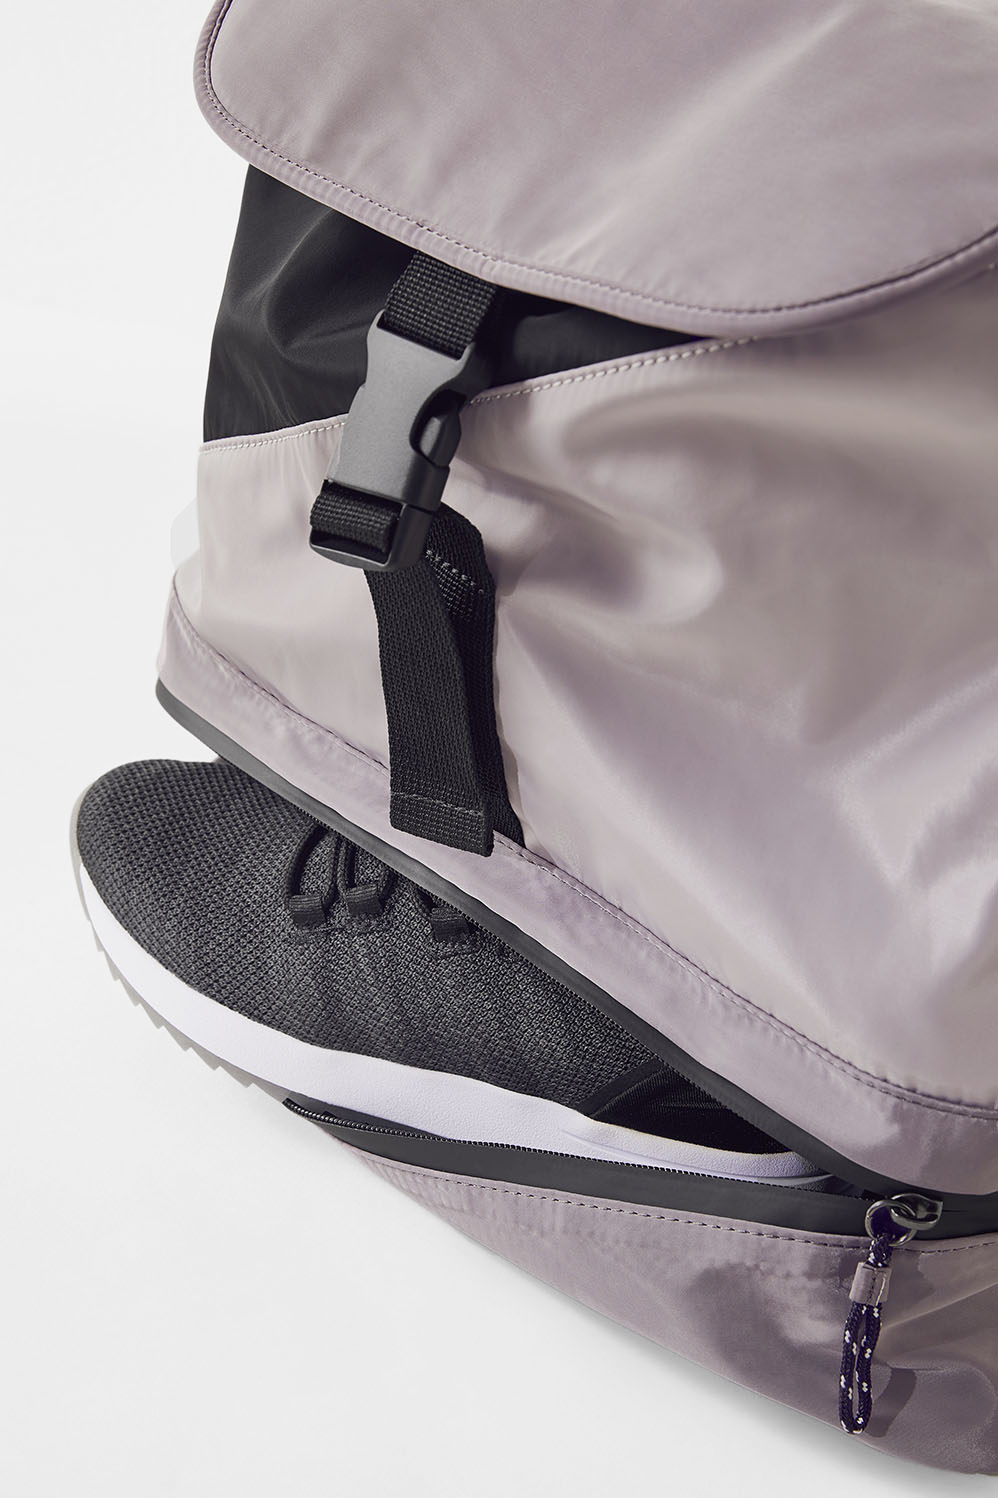 The Scape Backpack